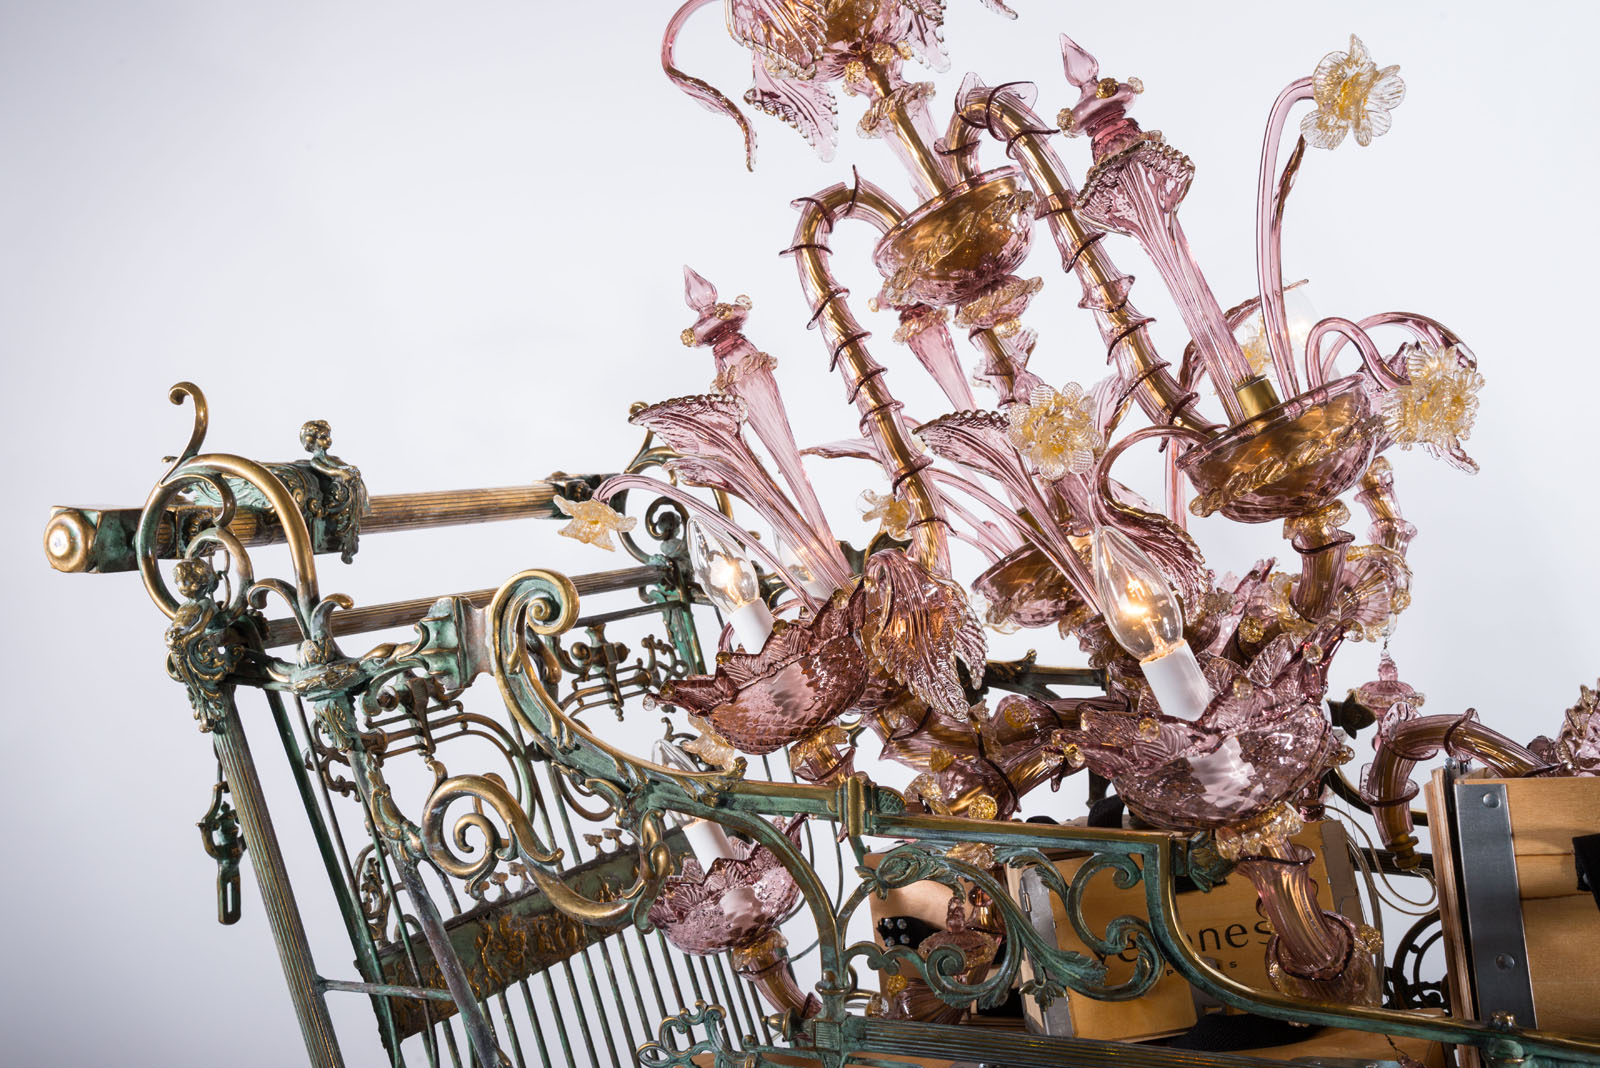 noel-christmas-chandelier-caddy-2013-veronese-6-2.jpg